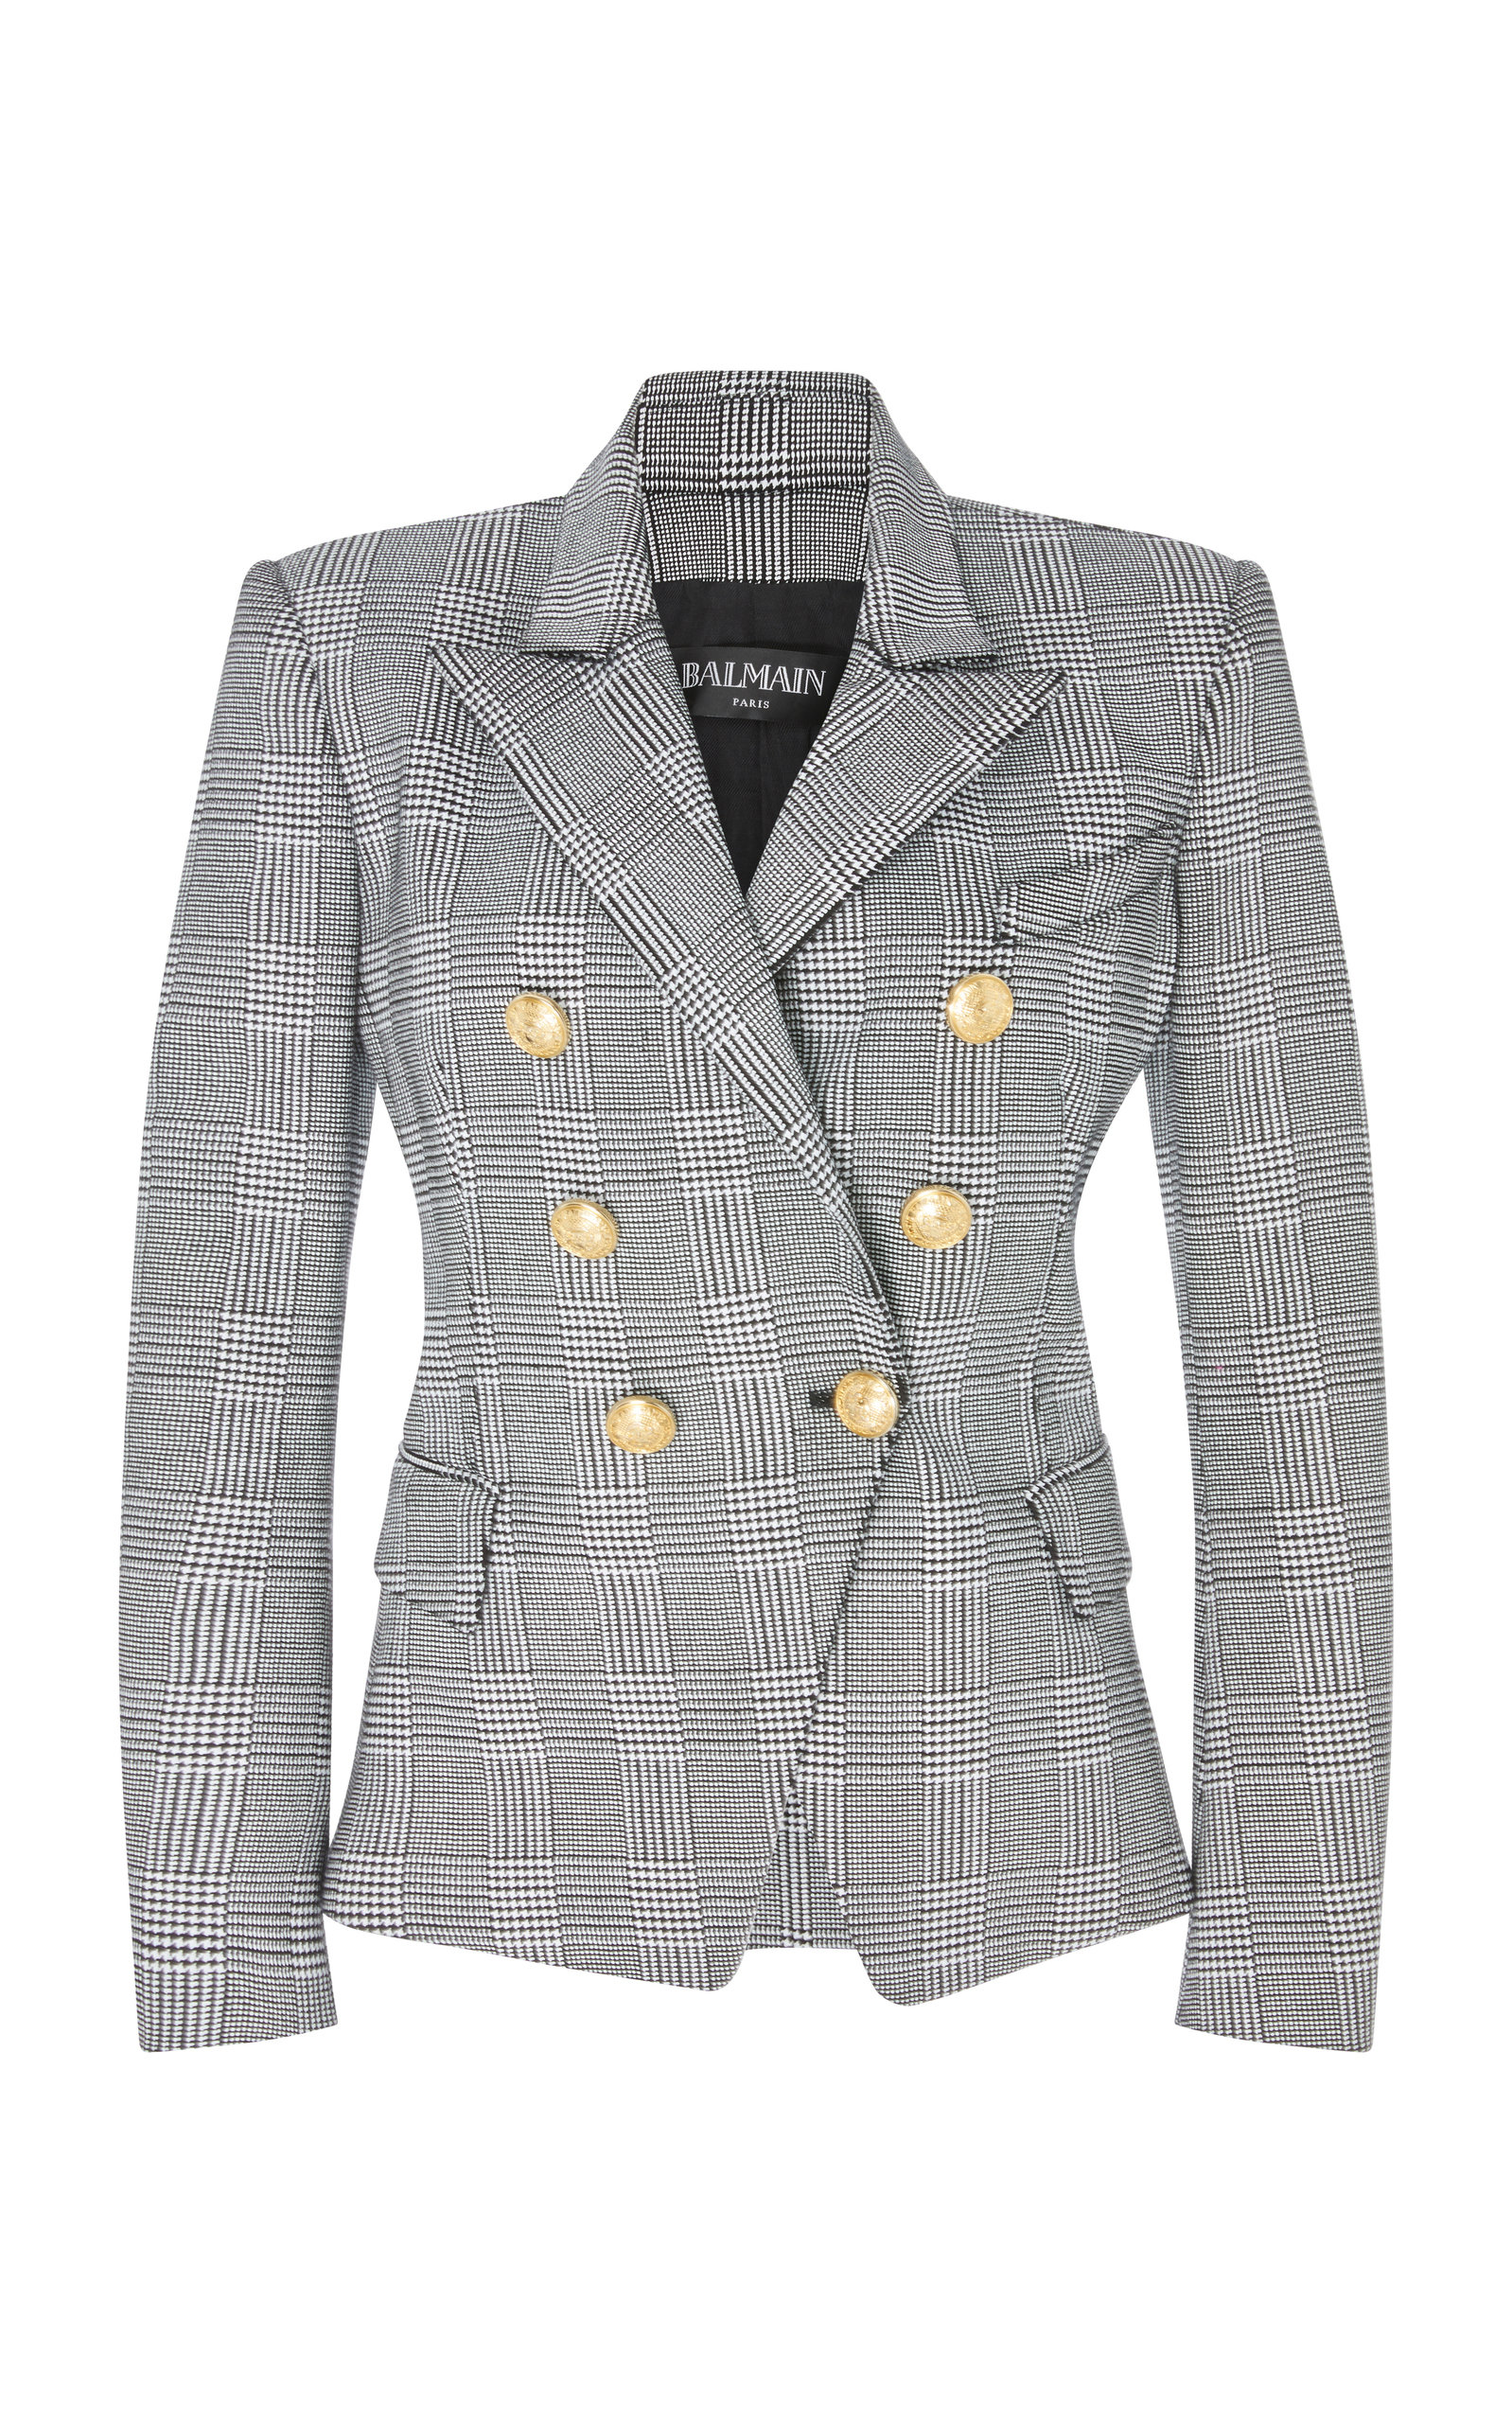 BALMAIN PRINCE OF WALES CHECKED DOUBLE BREASTED COTTON-BLEND BLAZER